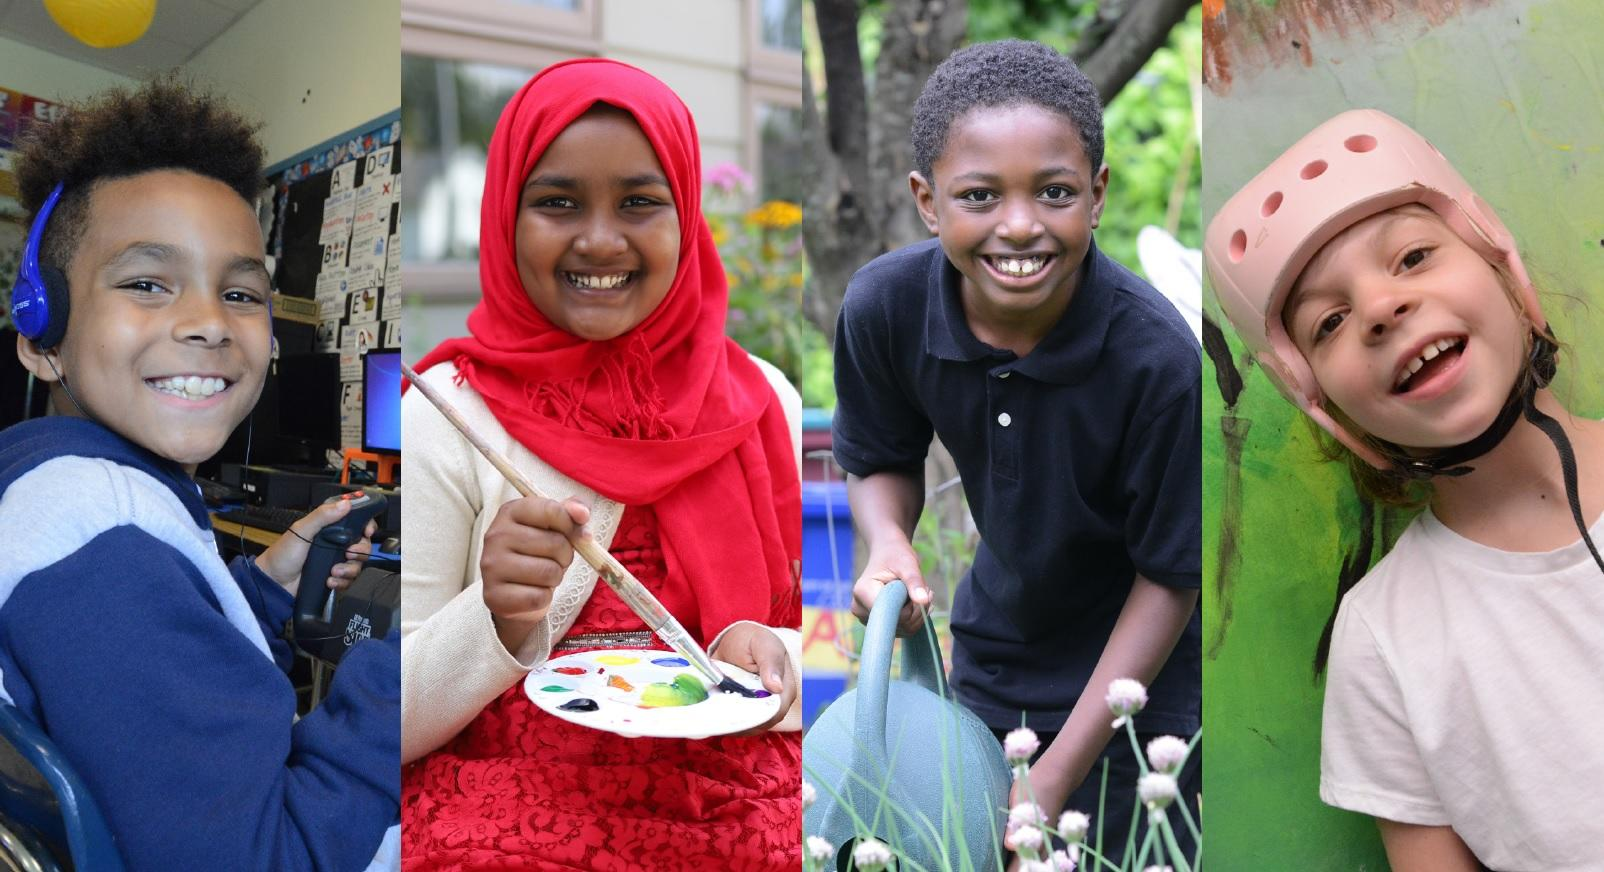 Four pictures of students, one from each of the magnet schools. A TOAST student using a flight simulator, a Montessori student painting, a Delaware student watering flowers and an ASH student smiling.